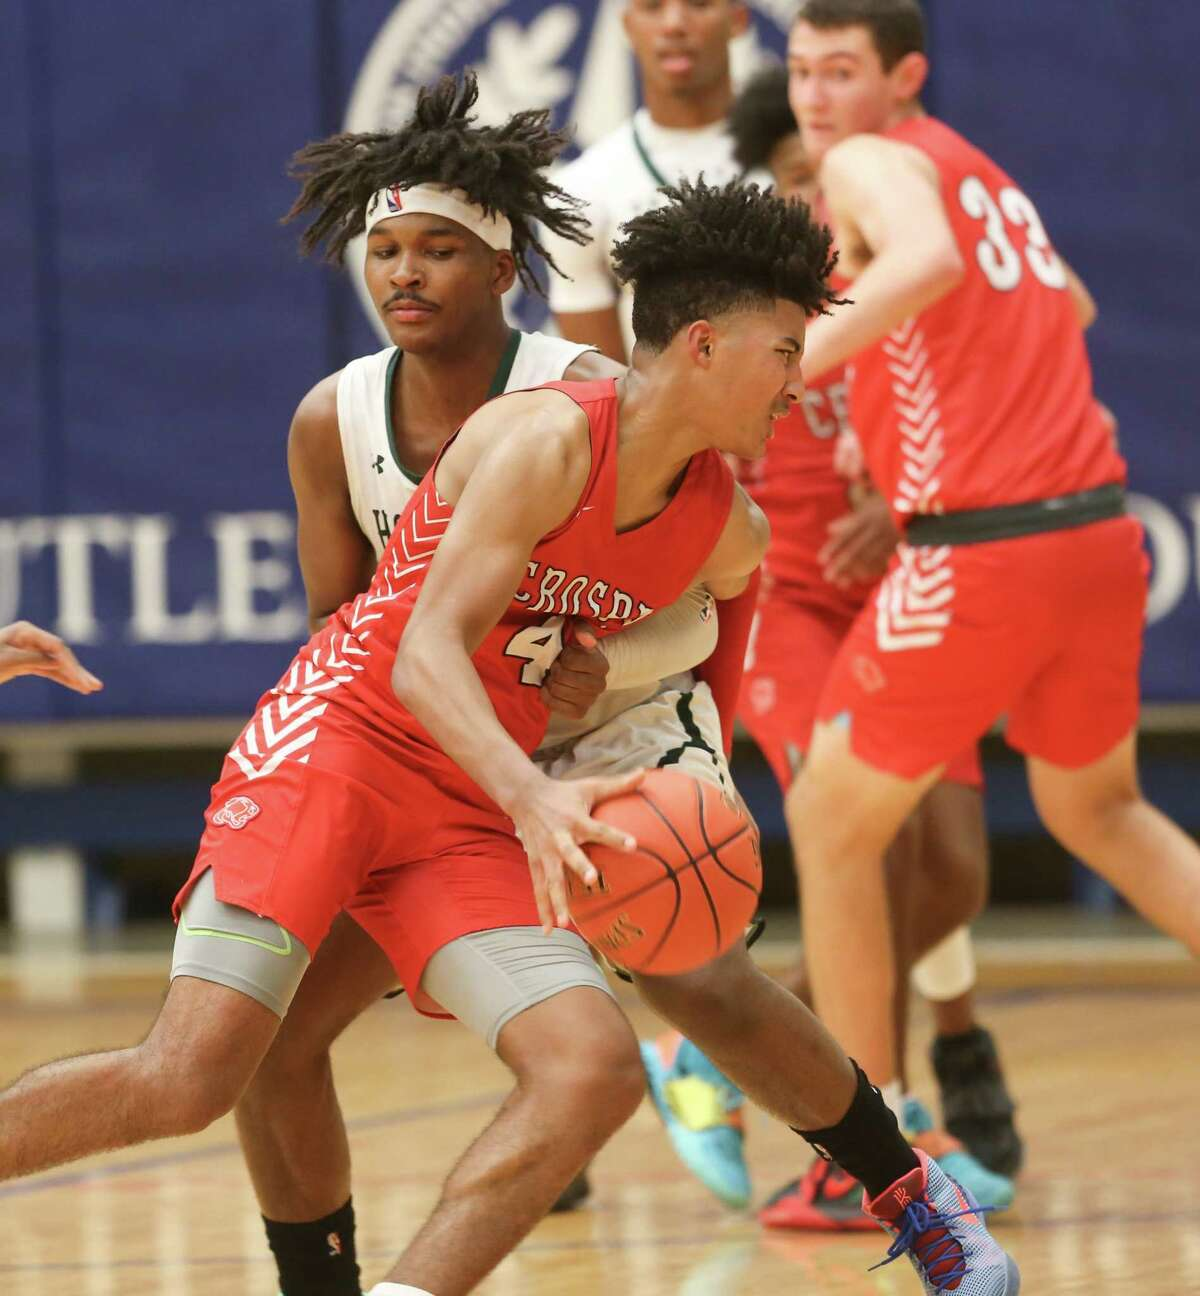 """Crosby's Sean """"PJ"""" Haggerty (4) dribbles around Hightower's Bryce Griggs (12) during playoff game action at Butler Fieldhouse in Houston on Wednesday, Feb. 24, 2021. Crosby won the game 68-54."""